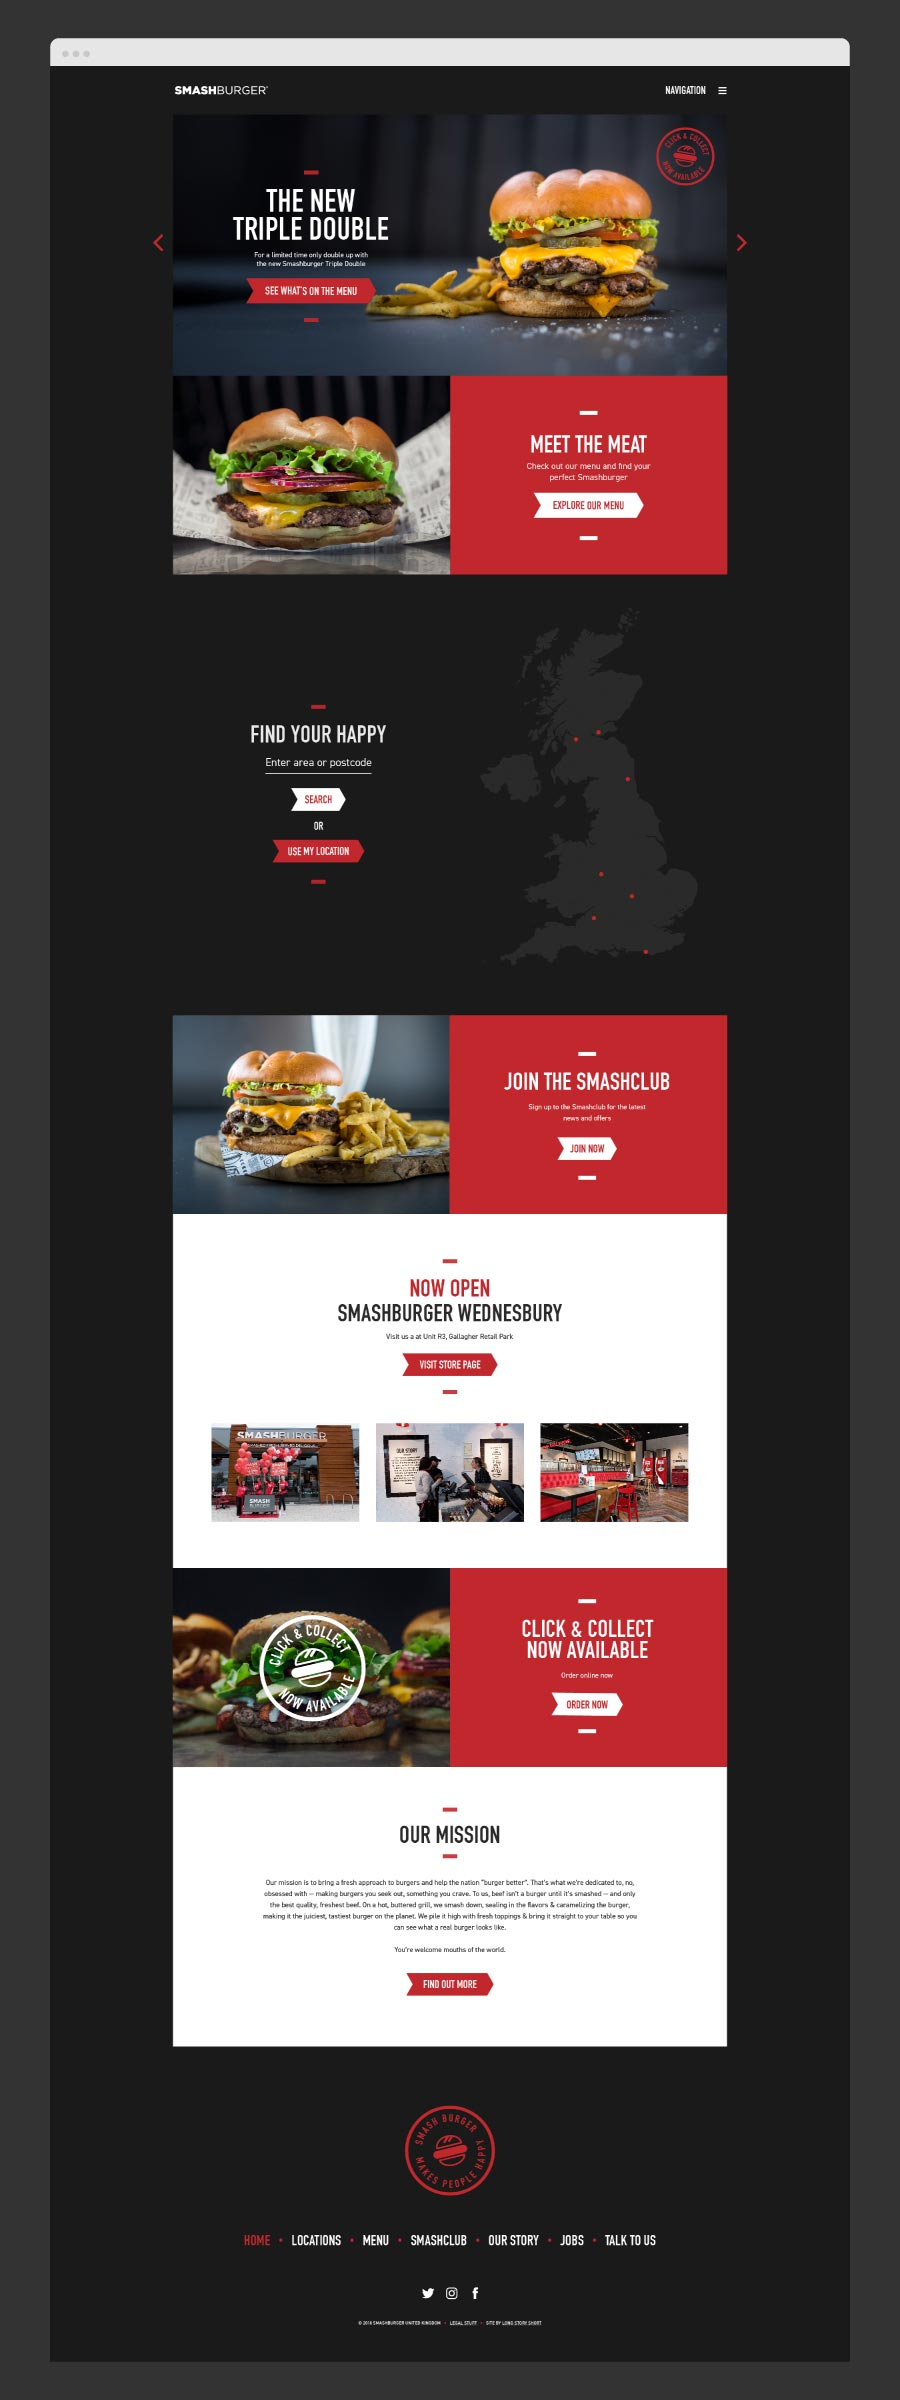 smashbox burger website with a red and black colour theme throughout